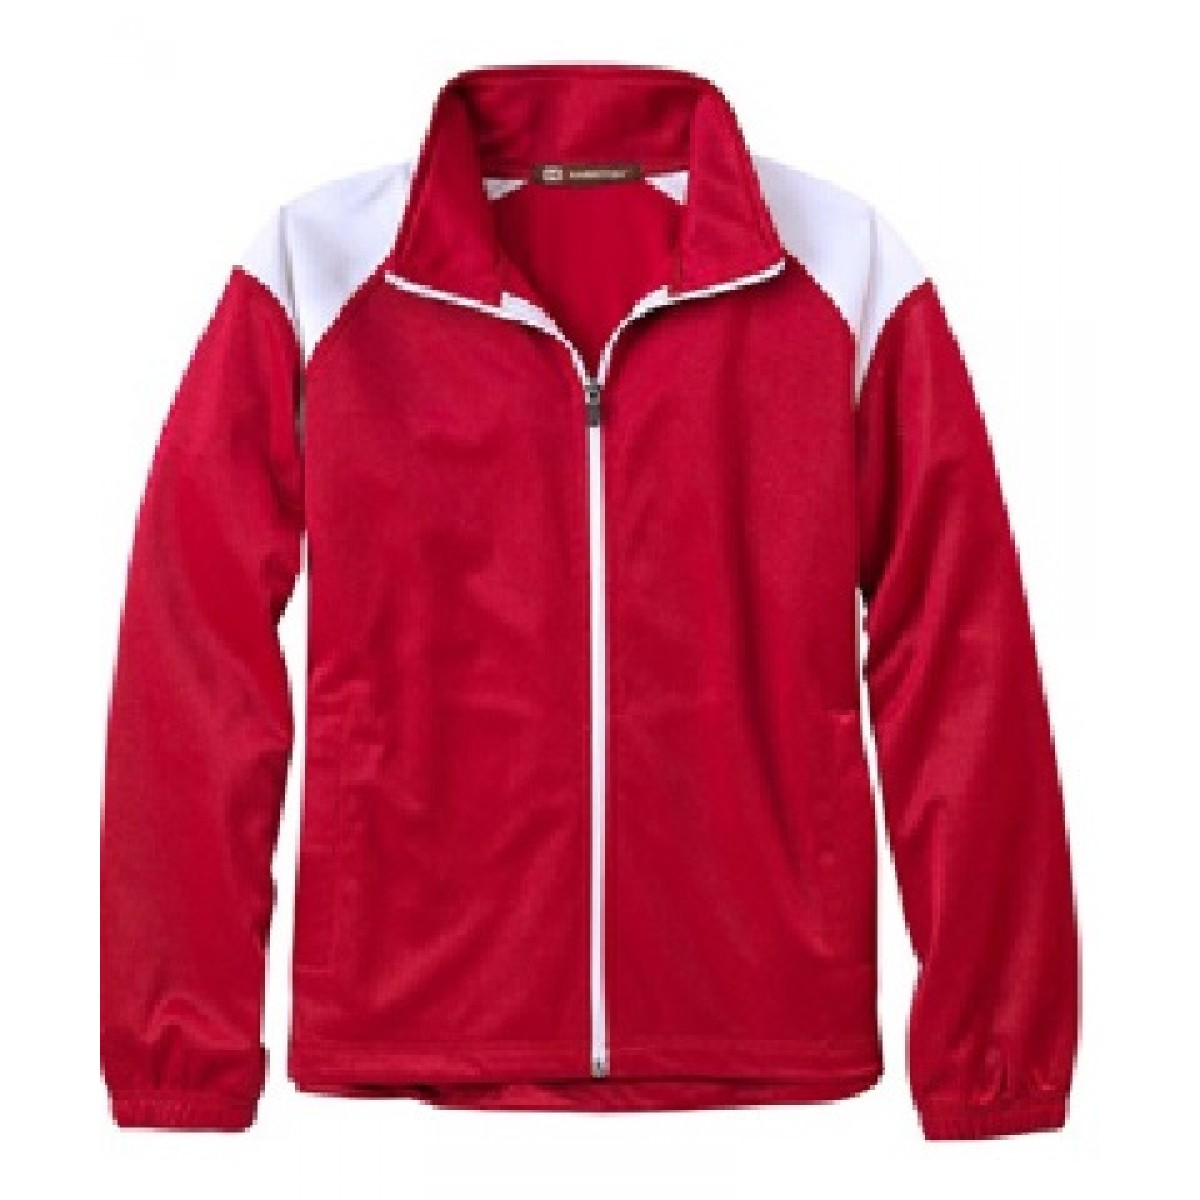 Embroidered Red Tricot Track Jacket-Red-S